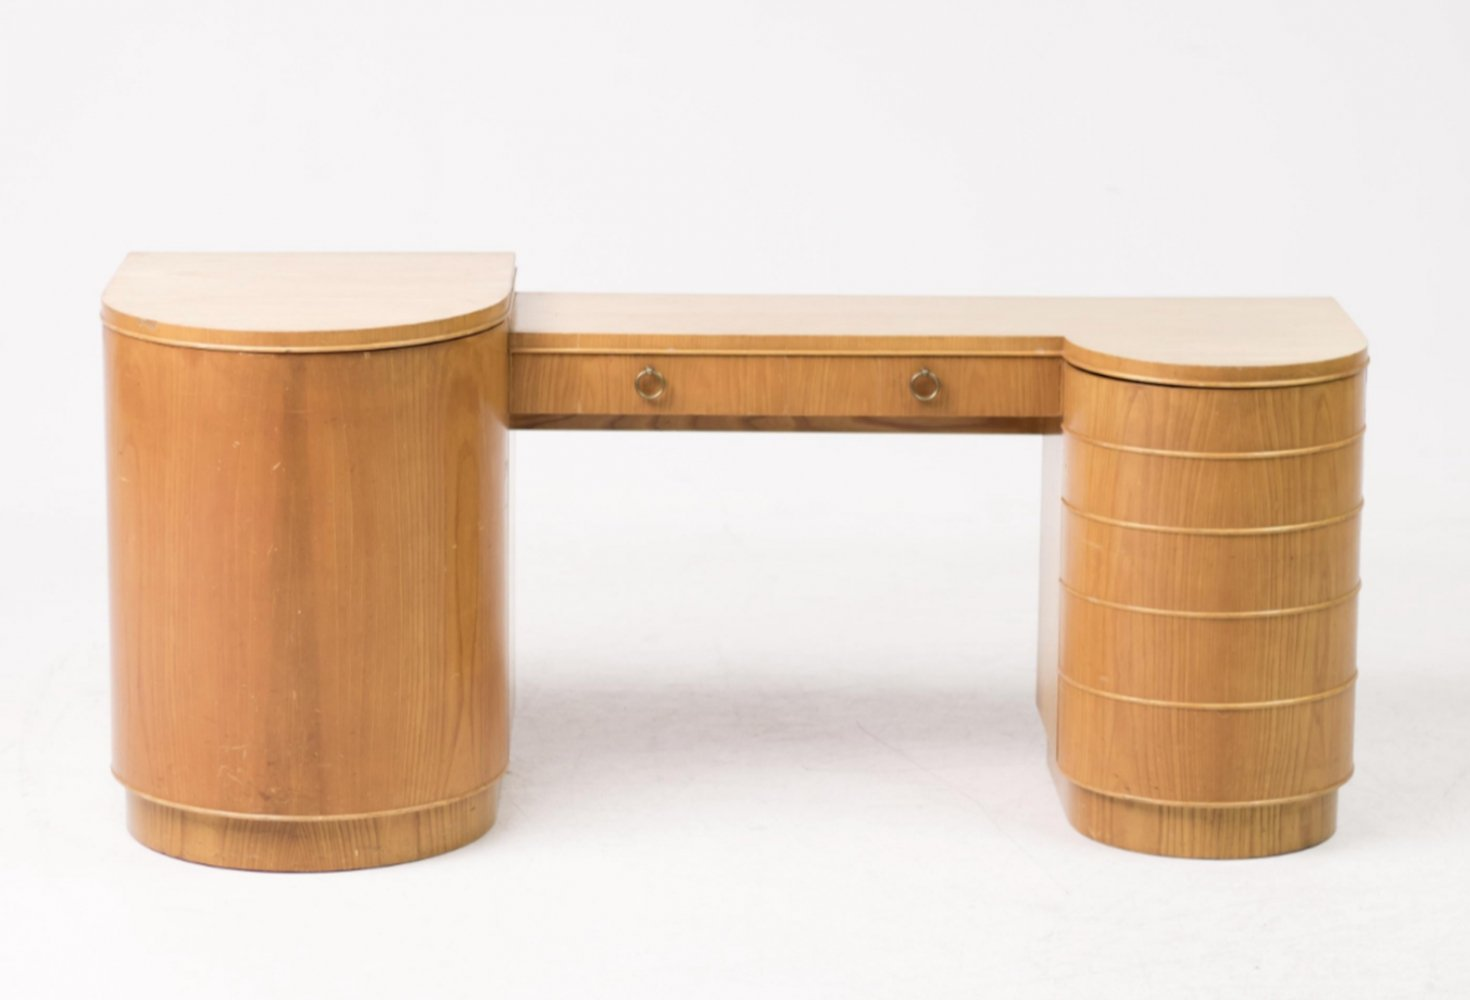 Dressing table by Axel Larsson for Bodafors